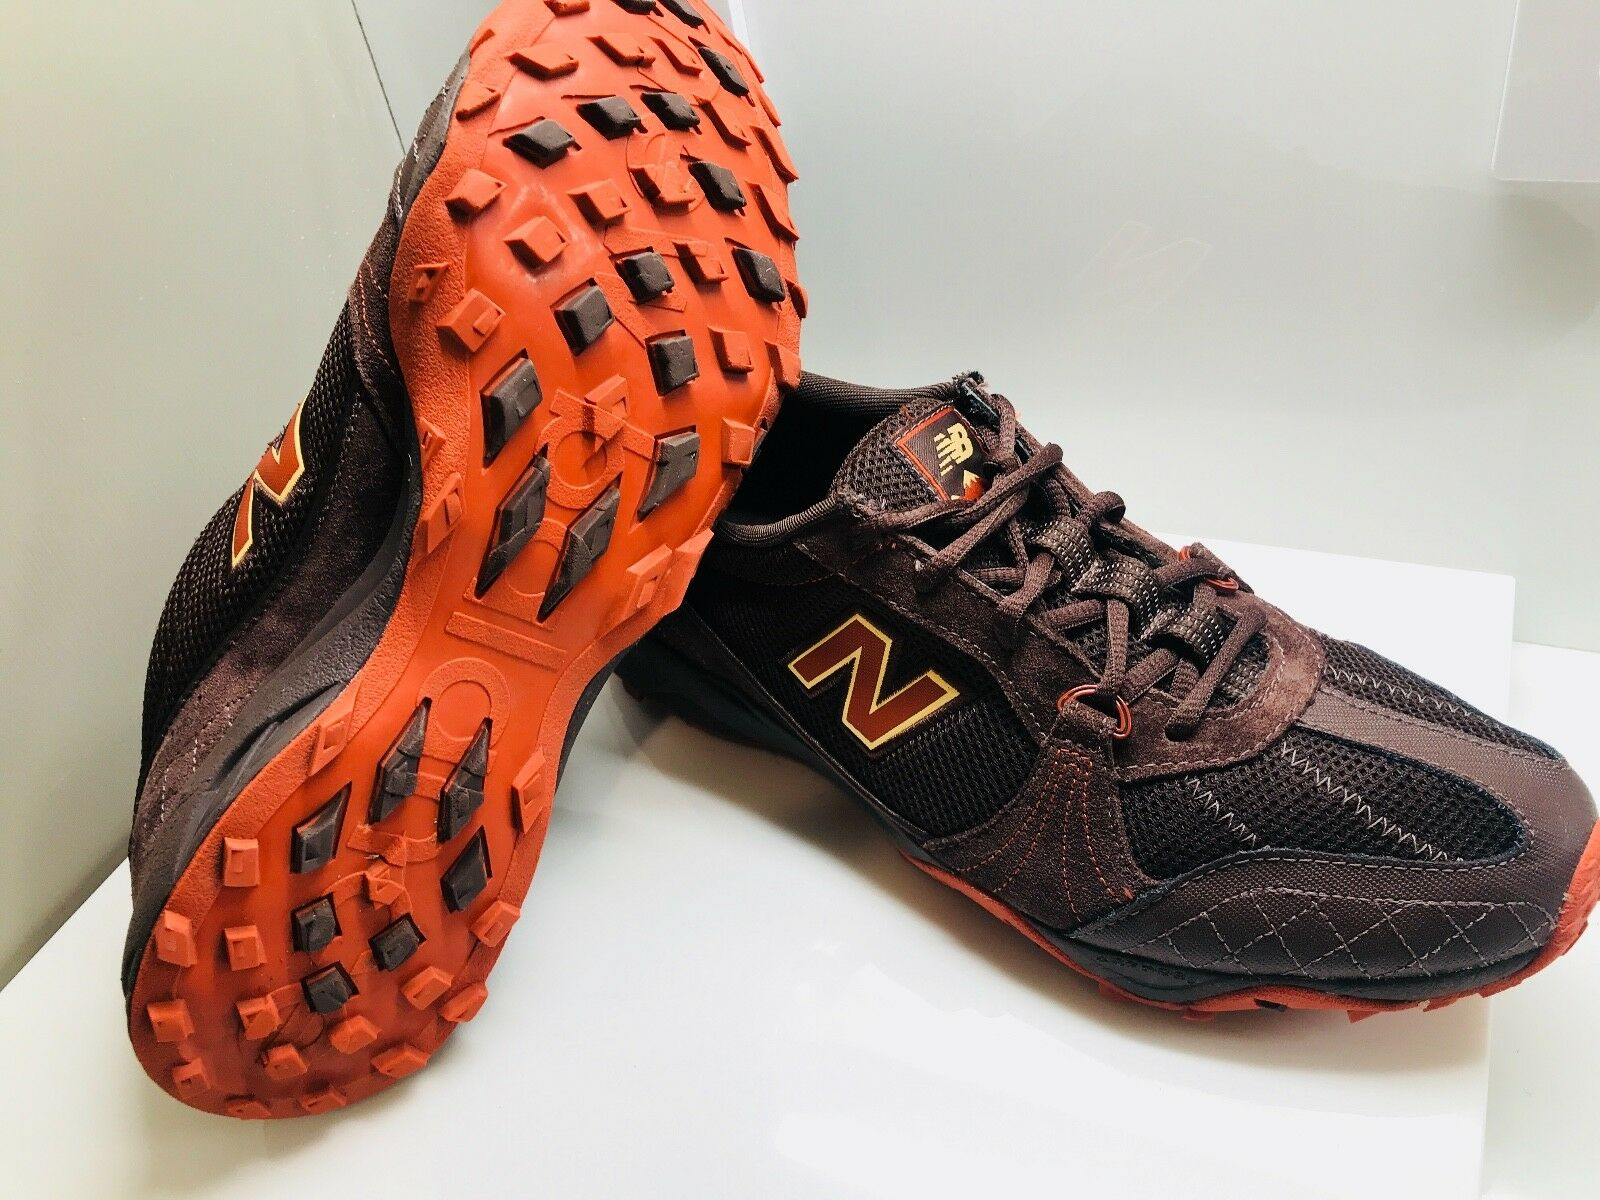 New Balance Athletic Running shoes Extra Grip Slip Resistant OuterSole Size 10.5